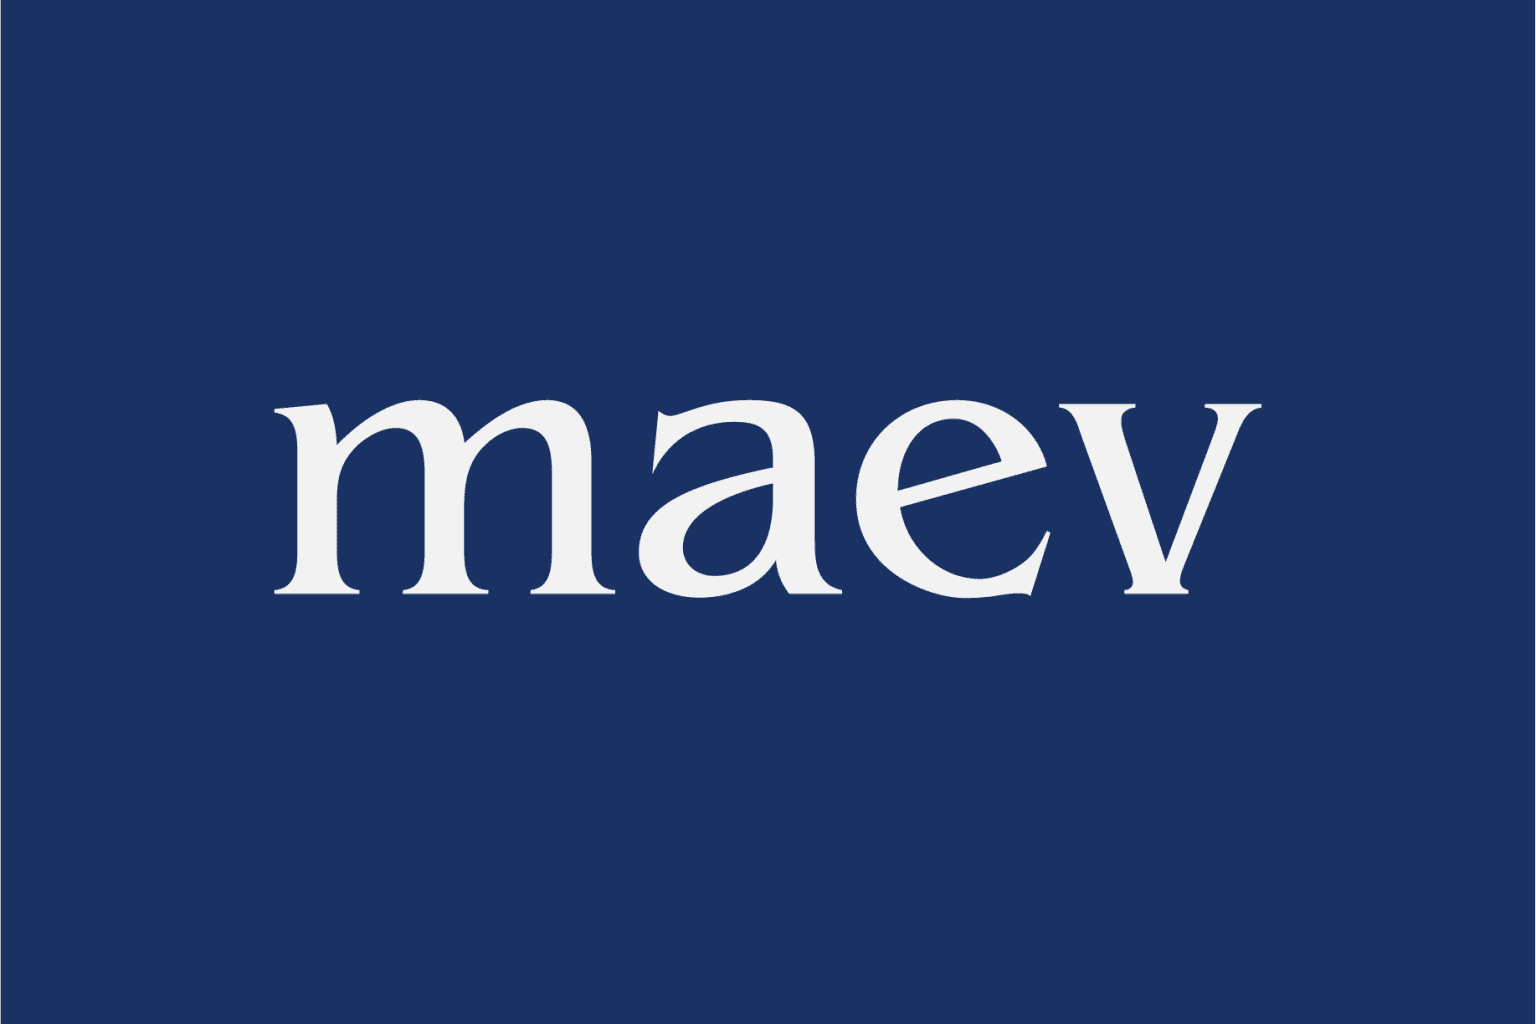 Maev Brand Identity and Packaging Design